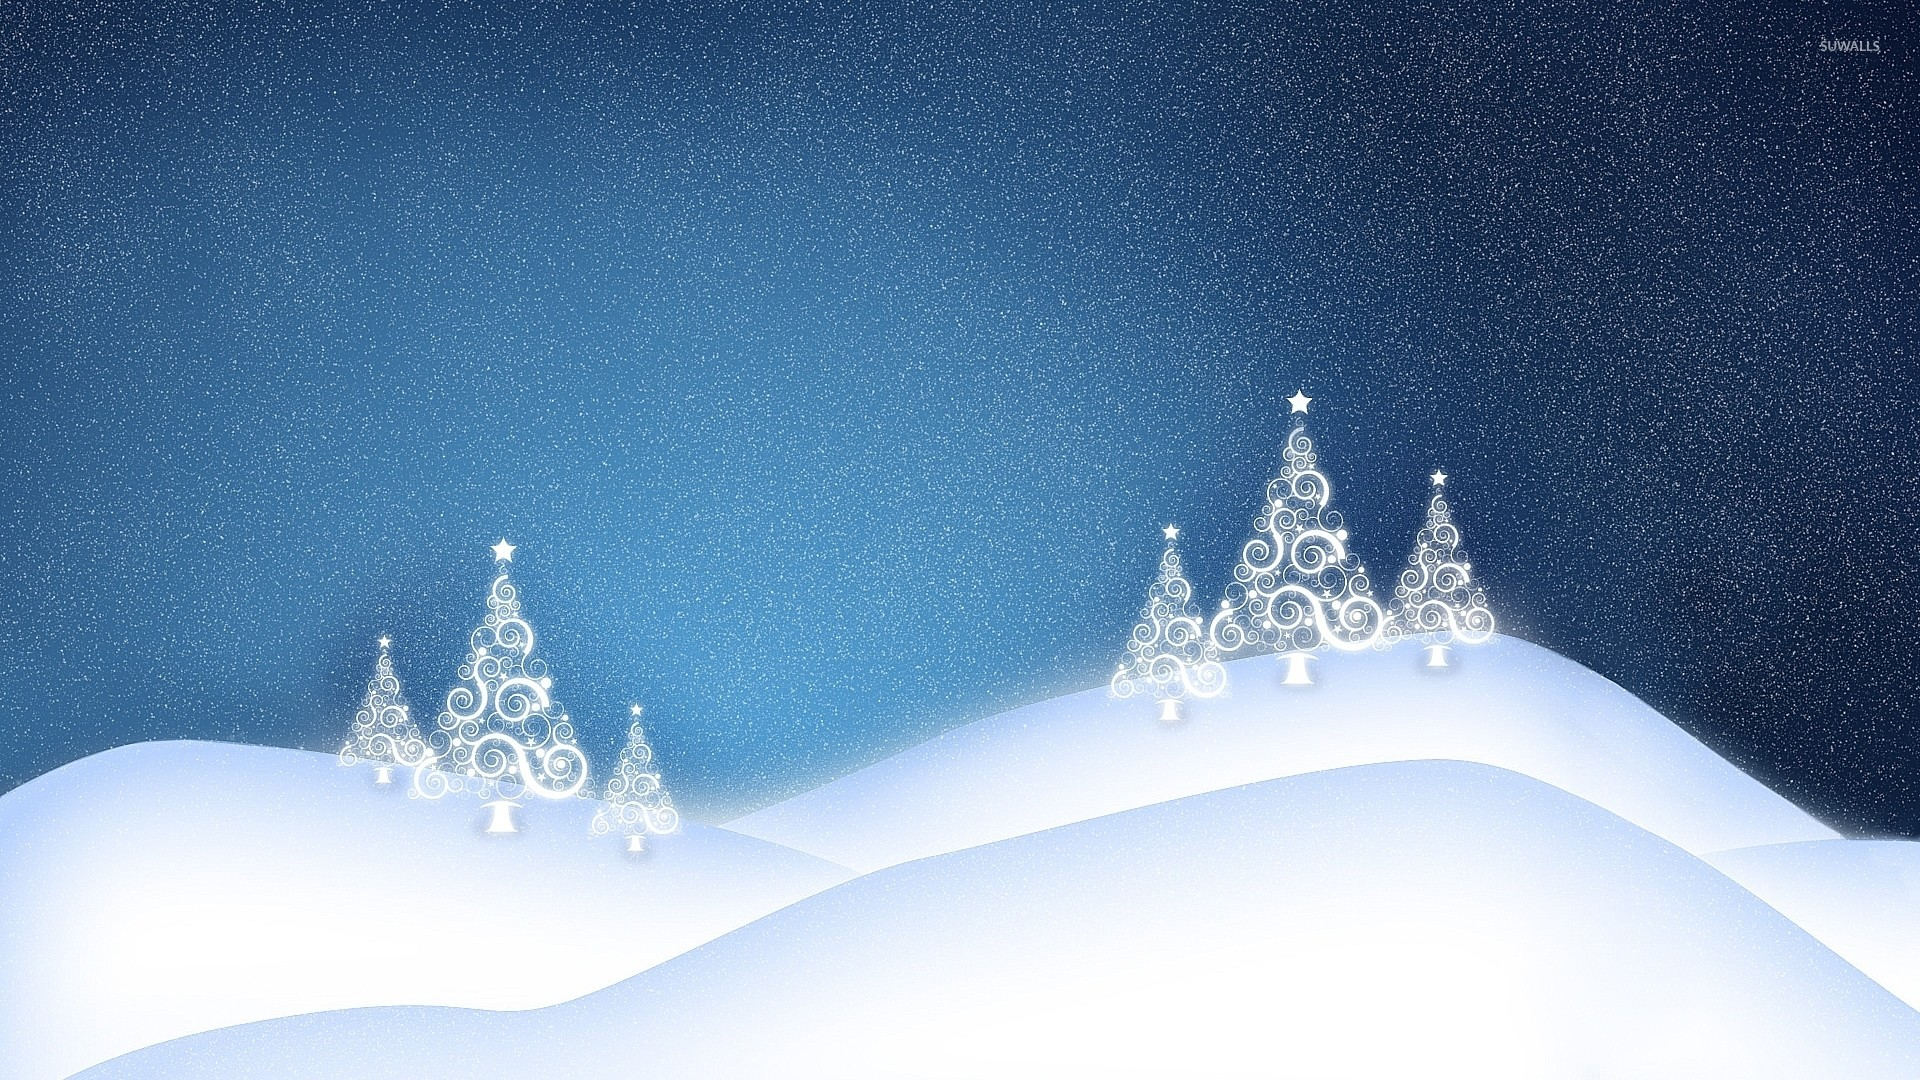 1920x1080 White glowing Christmas tree on the snowy hills wallpaper  jpg